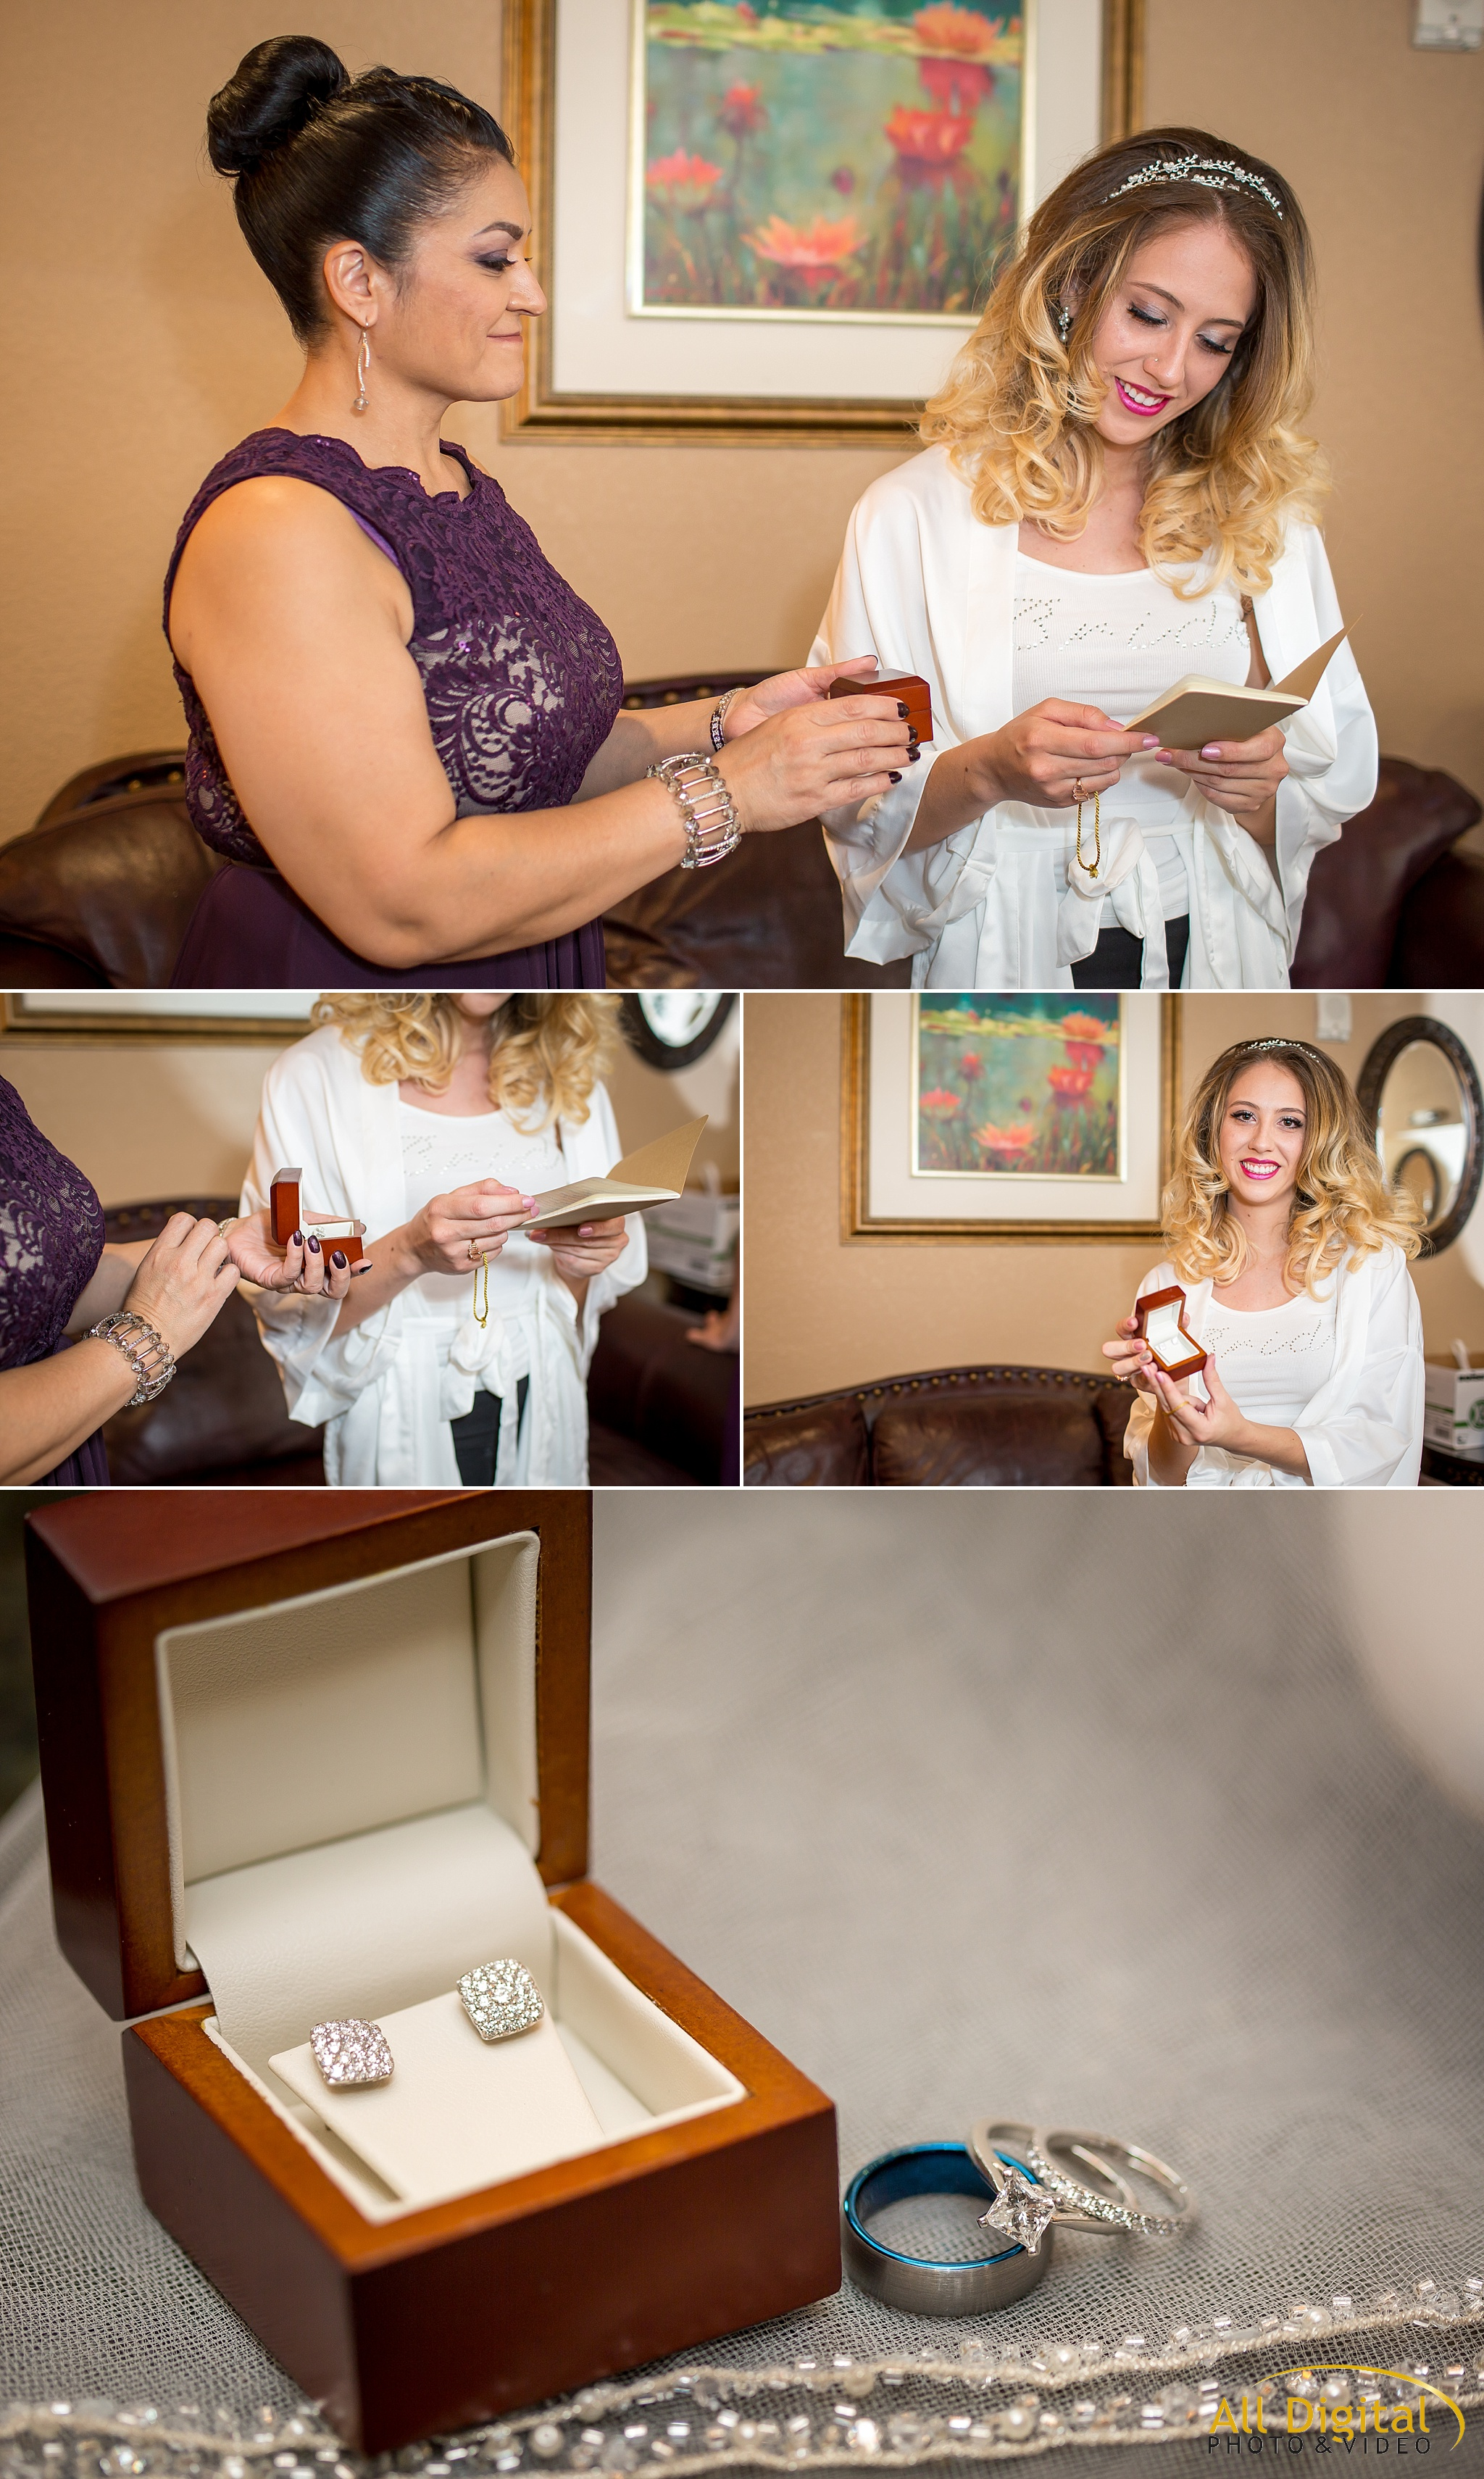 Bride receiving a gift and note from her groom before the ceremony.